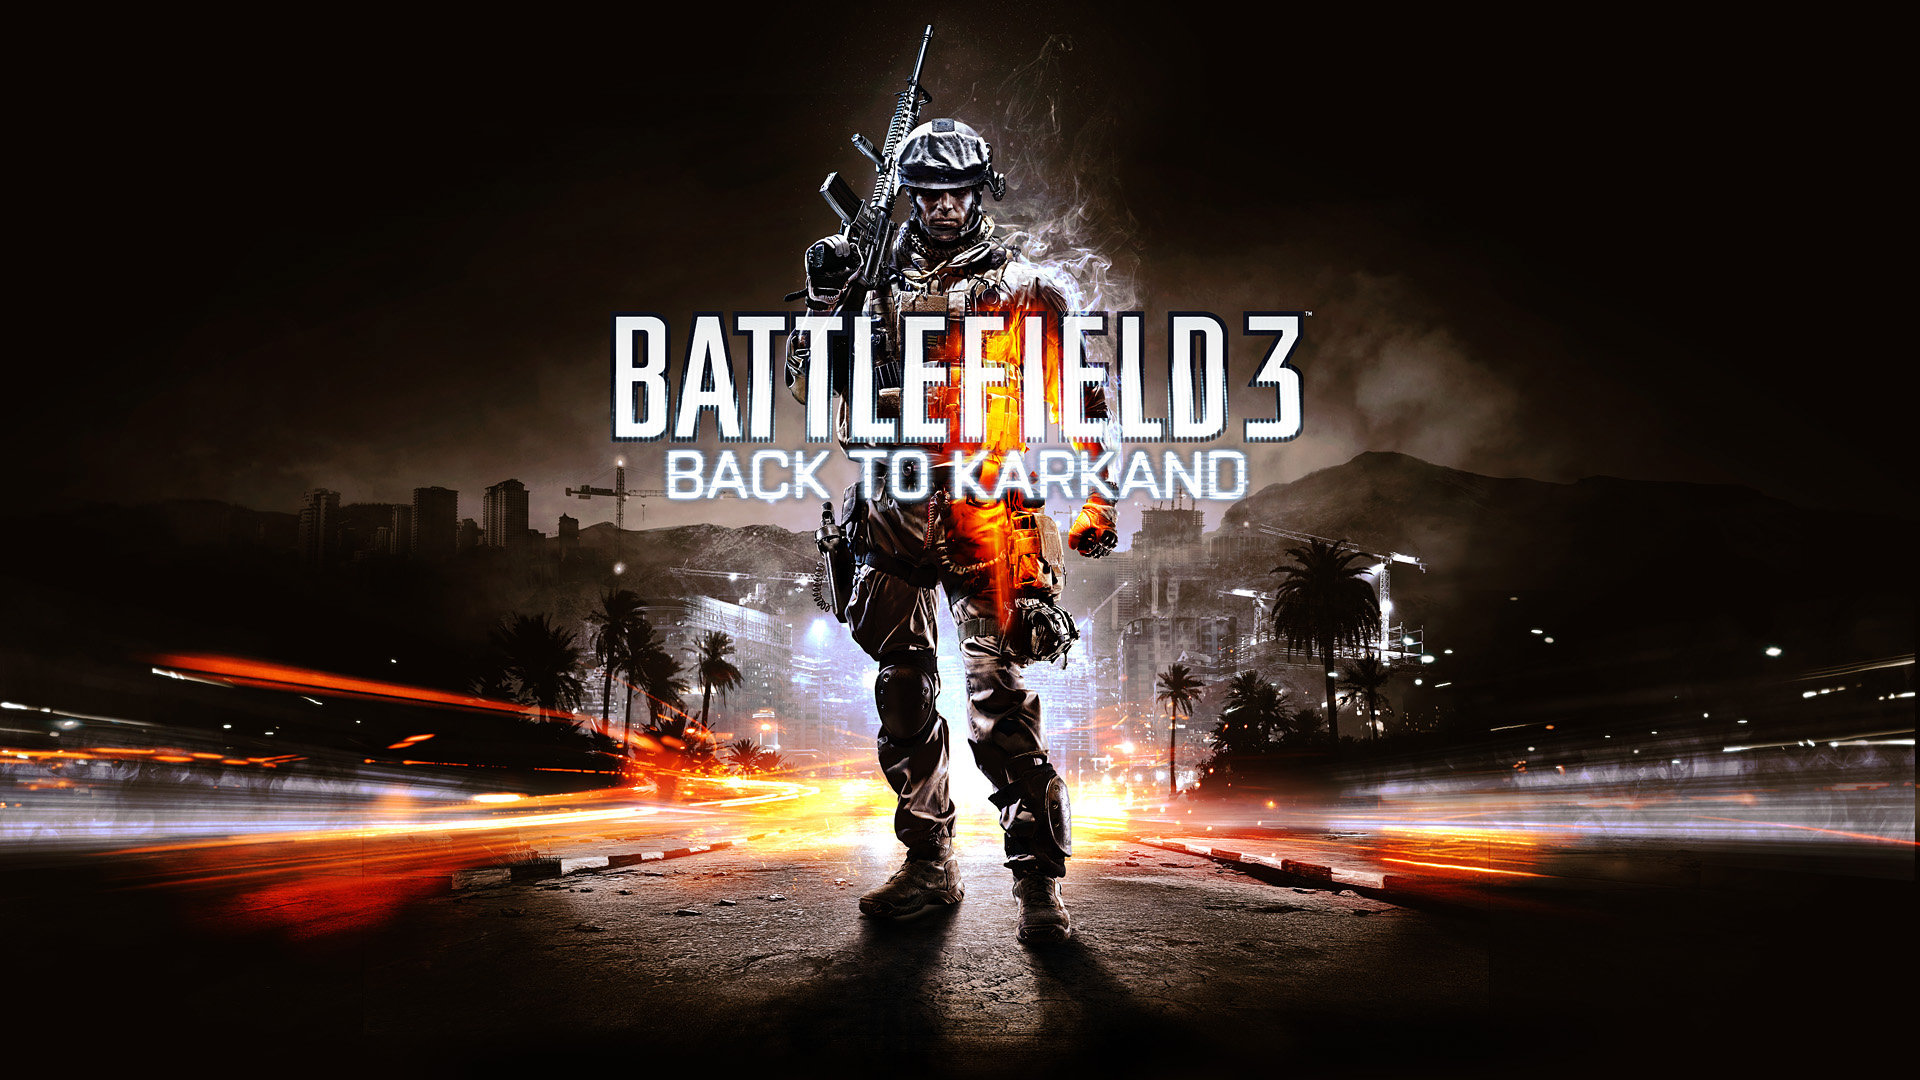 Battlefield 3: Back to Karkand (Wallpaler)